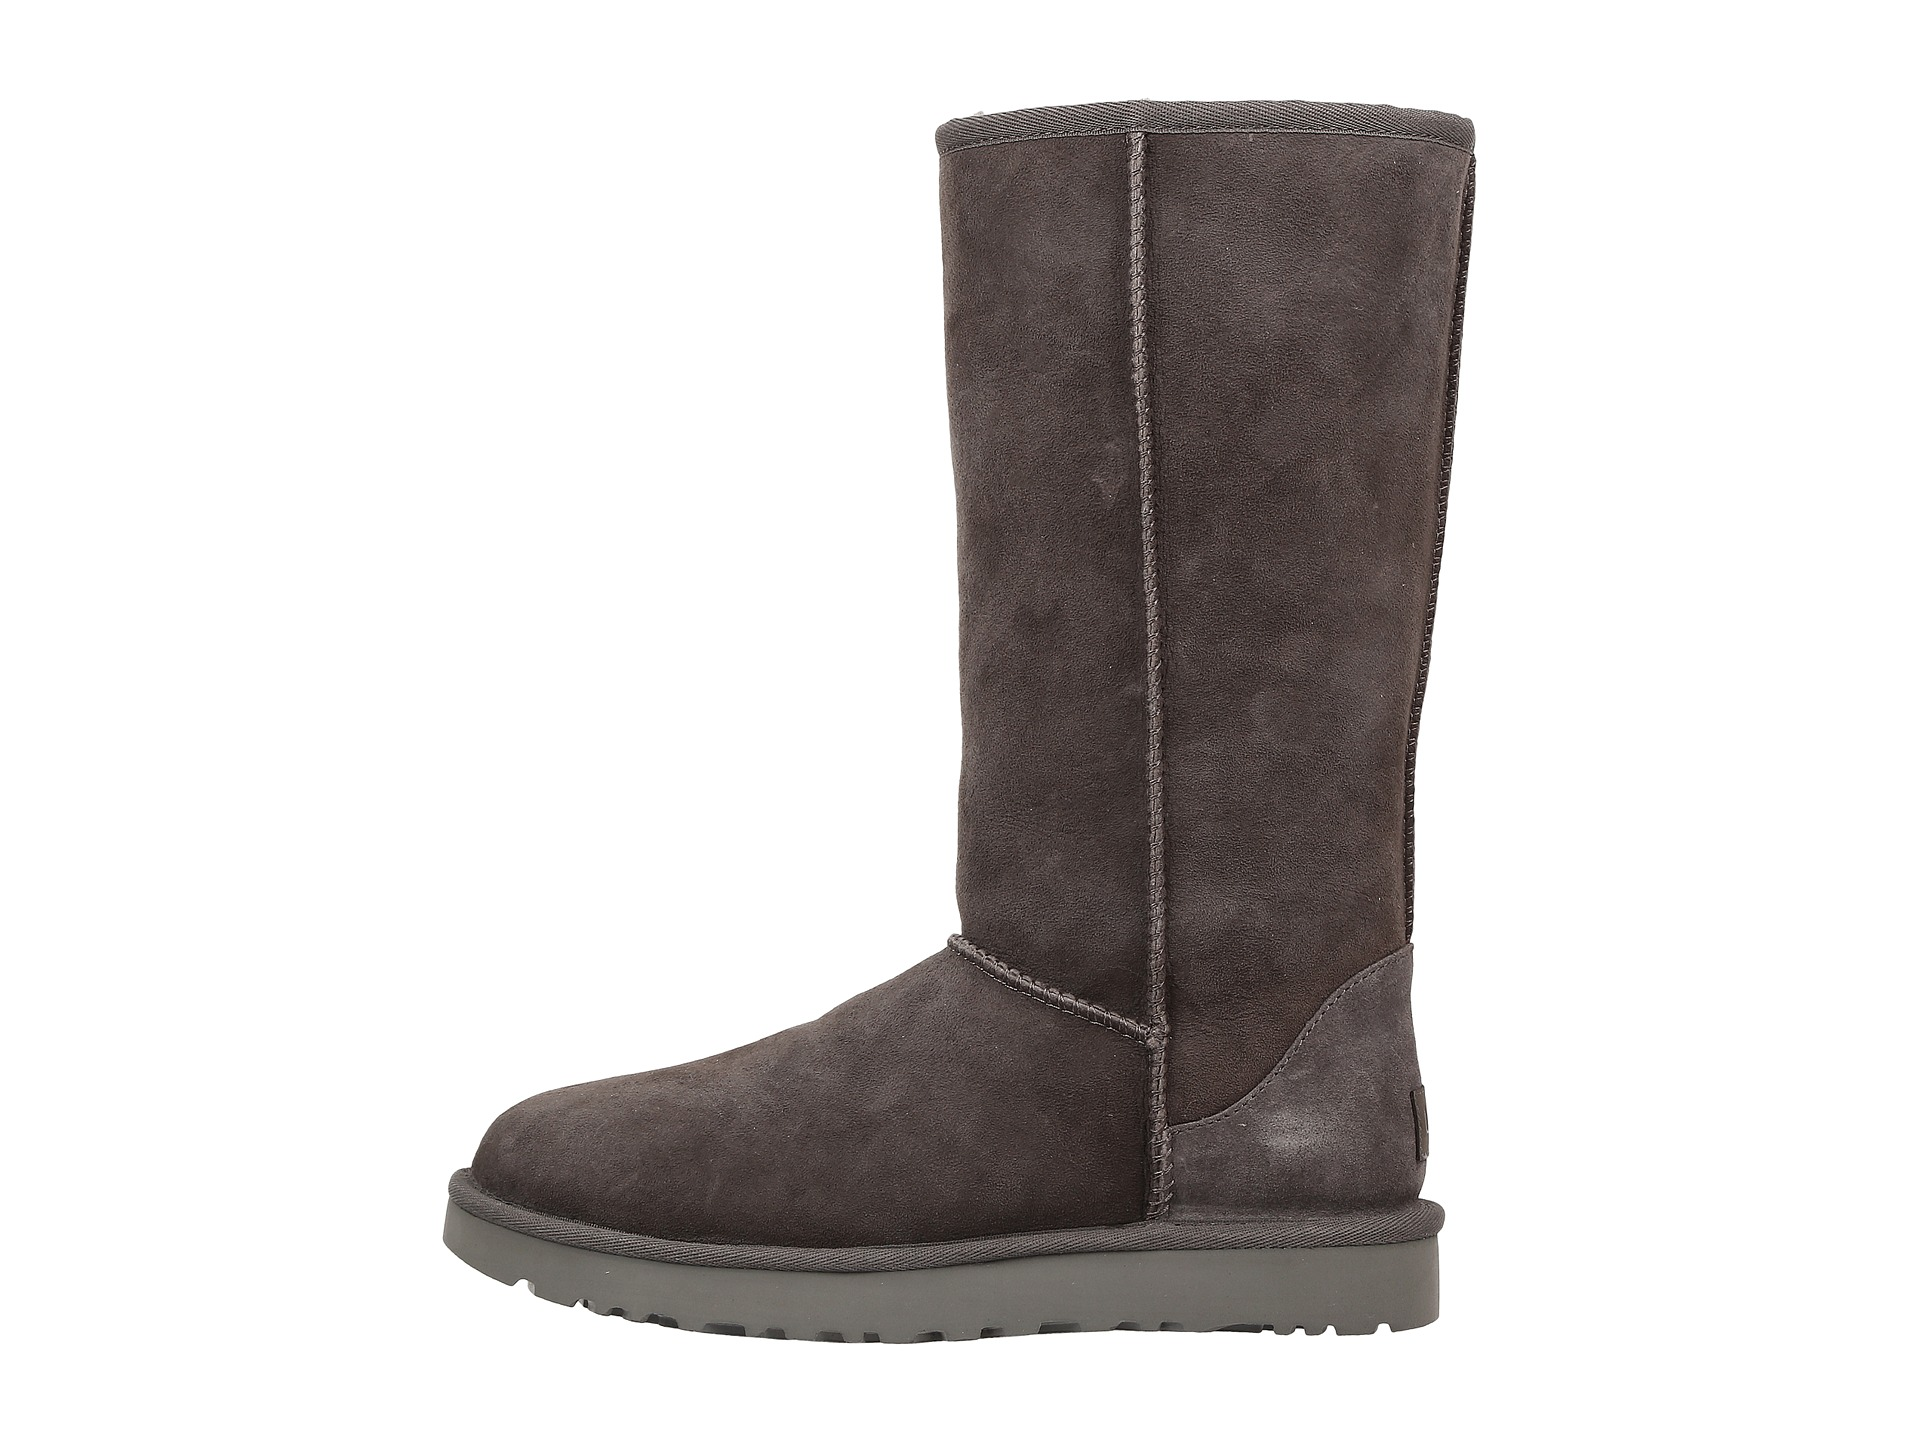 100 authentic ugg boots on sale